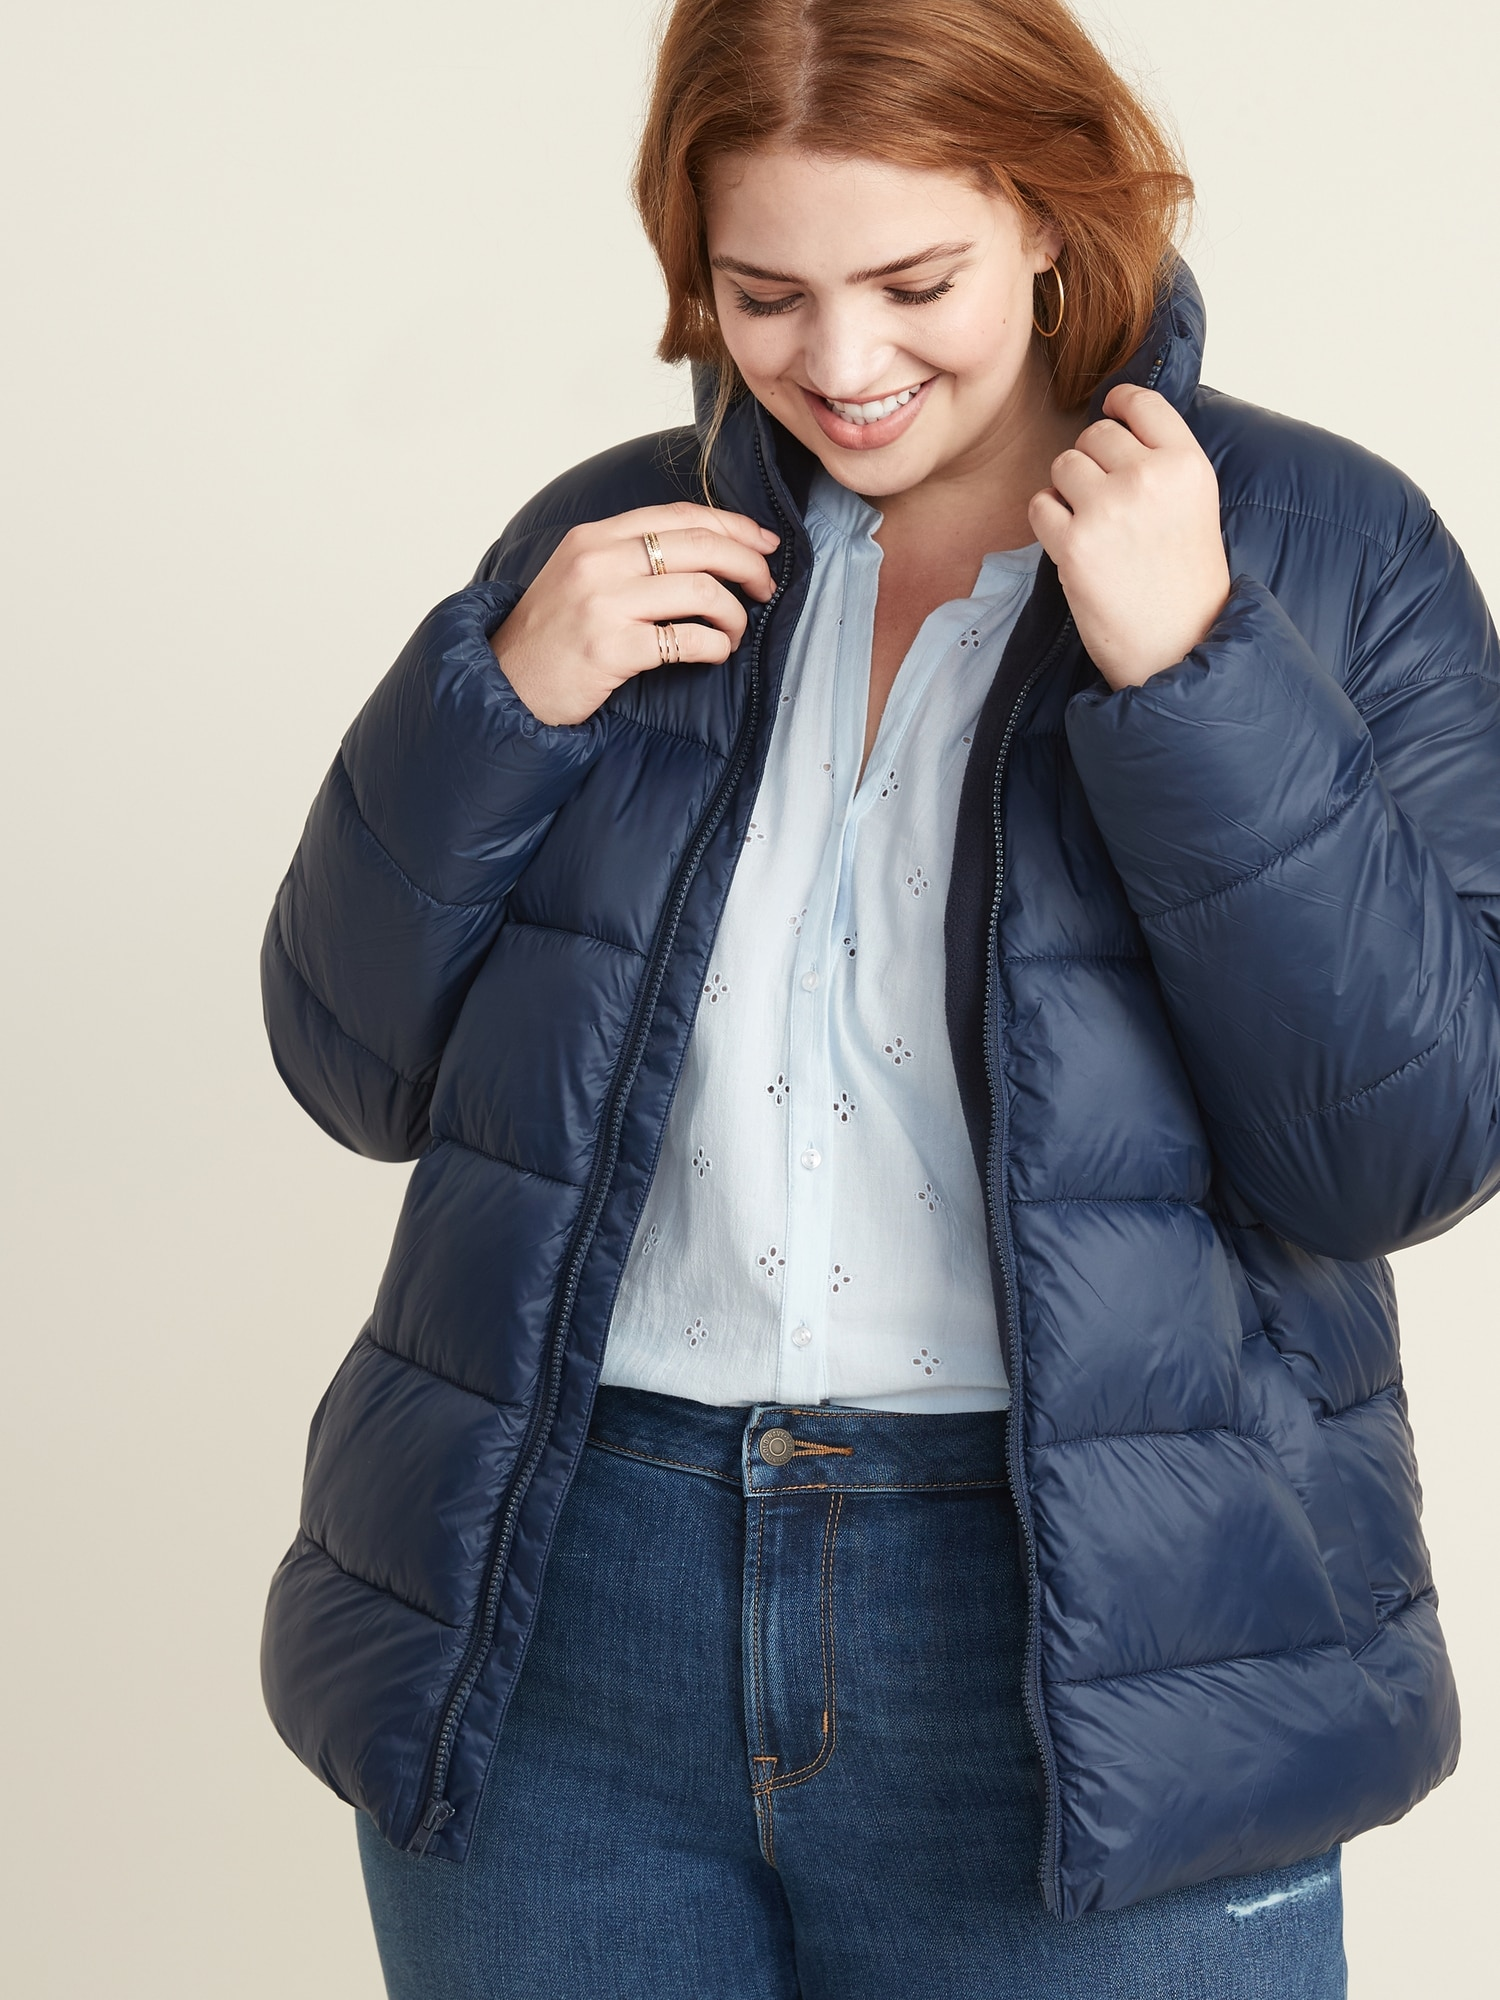 Frost Free Plus Size Zip Puffer Jacket by Old Navy